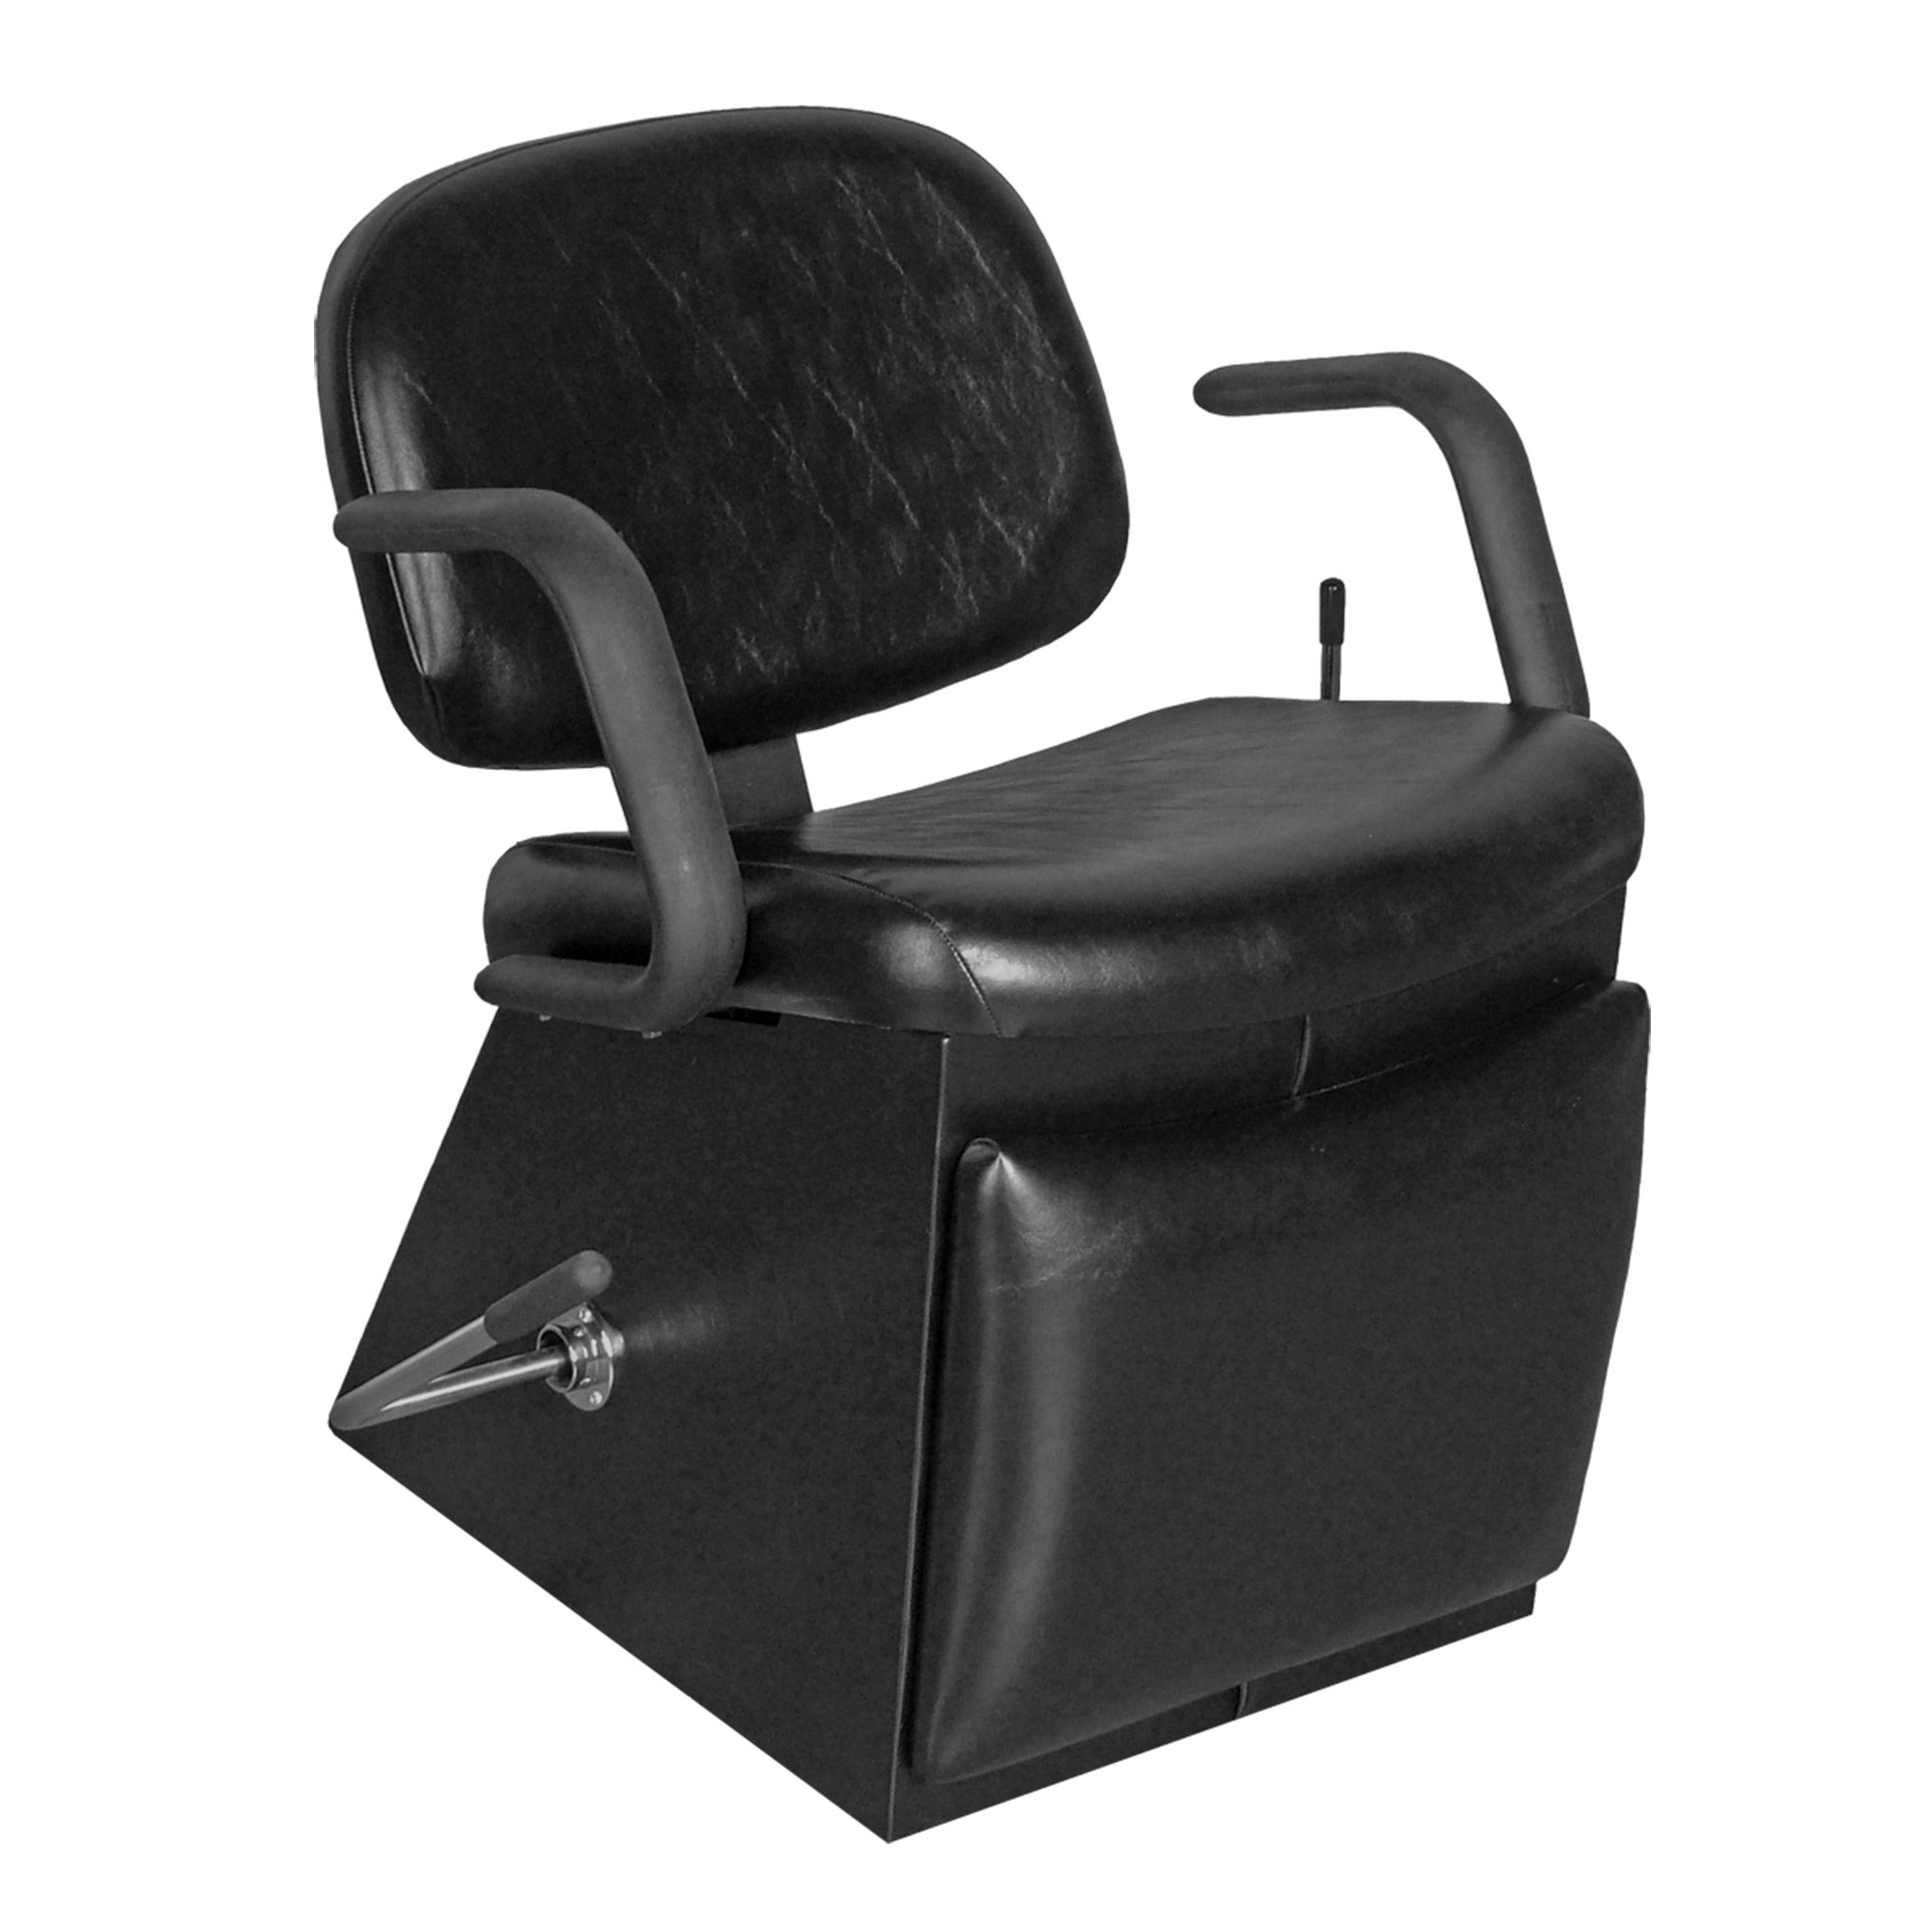 JayLee Shampoo Chair with Legrest - Collins